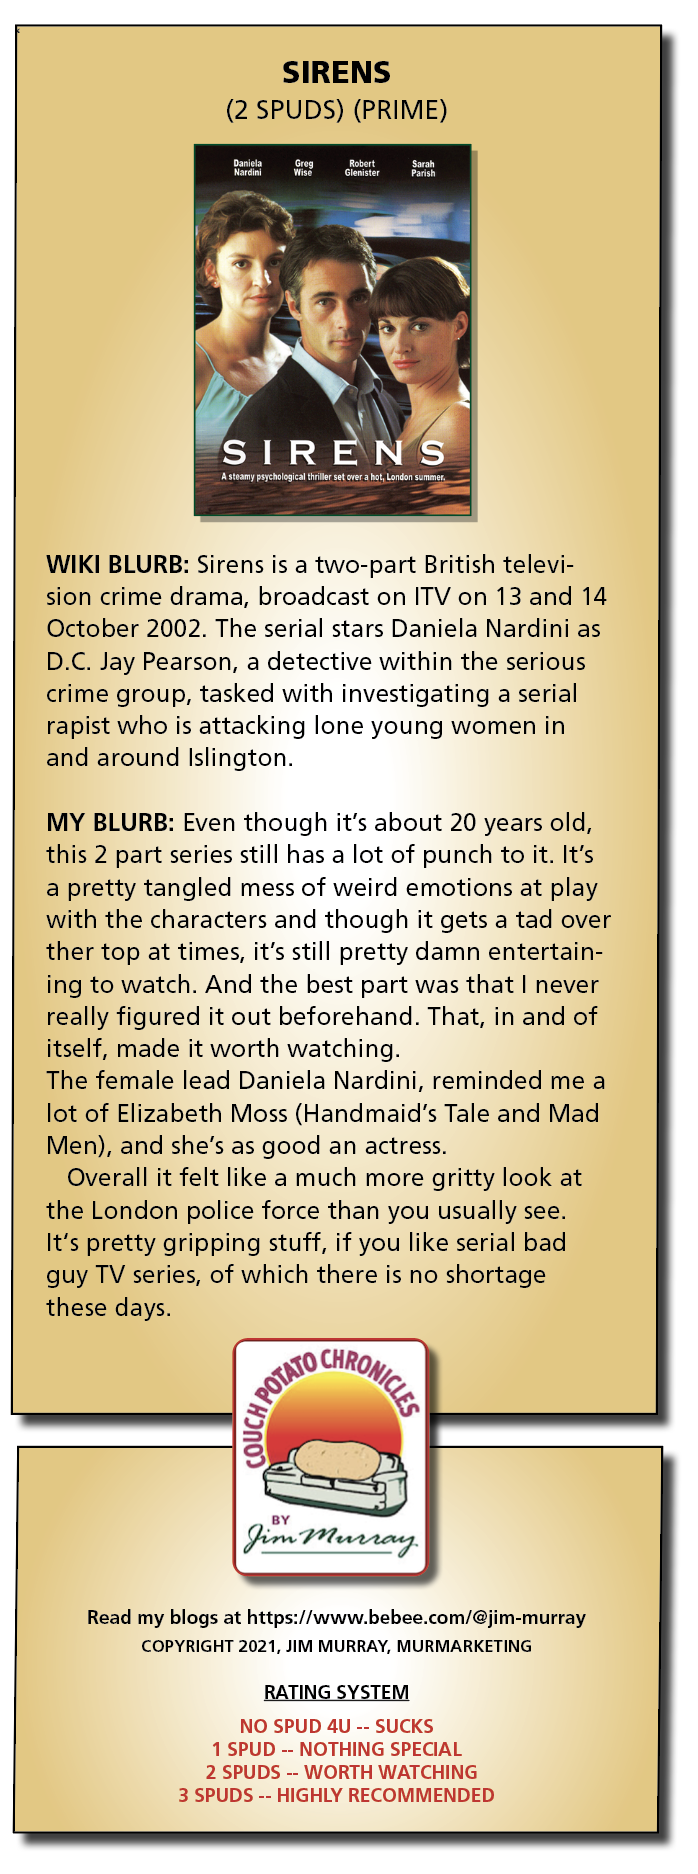 SIRENS (2 SPUDS) (PRIME)     WIKI BLURB: Sirens is a two-part British televi- sion crime drama, broadcast on ITV on 13 and 14 October 2002. The serial stars Daniela Nardini as D.C. Jay Pearson, a detective within the serious crime group, tasked with investigating a serial rapist who is attacking lone young women in and around Islington.  MY BLURB: Even though it's about 20 years old, this 2 part series still has a lot of punch to it. It's a pretty tangled mess of weird emotions at play with the characters and though it gets a tad over ther top at times, it's still pretty damn entertain- ing to watch. And the best part was that | never really figured it out beforehand. That, in and of itself, made it worth watching. The female lead Daniela Nardini, reminded me a lot of Elizabeth Moss (Handmaid's Tale and Mad Men), and she's as good an actress.  Overall it felt like a much more gritty look at the London police force than you usually see. It's pretty gripping stuff, if you like serial bad guy TV series, of which there is no shortage these days.  Read my blogs at https://www.bebee.com/@jim-murray COPYRIGHT 2021, JIM MURRAY, MURMARKETING  RATING SYSTEM  NO SPUD 4U -- SUCKS 1 SPUD -- NOTHING SPECIAL 2 SPUDS -- WORTH WATCHING  3 SPUDS -- HIGHLY RECOMMENDED